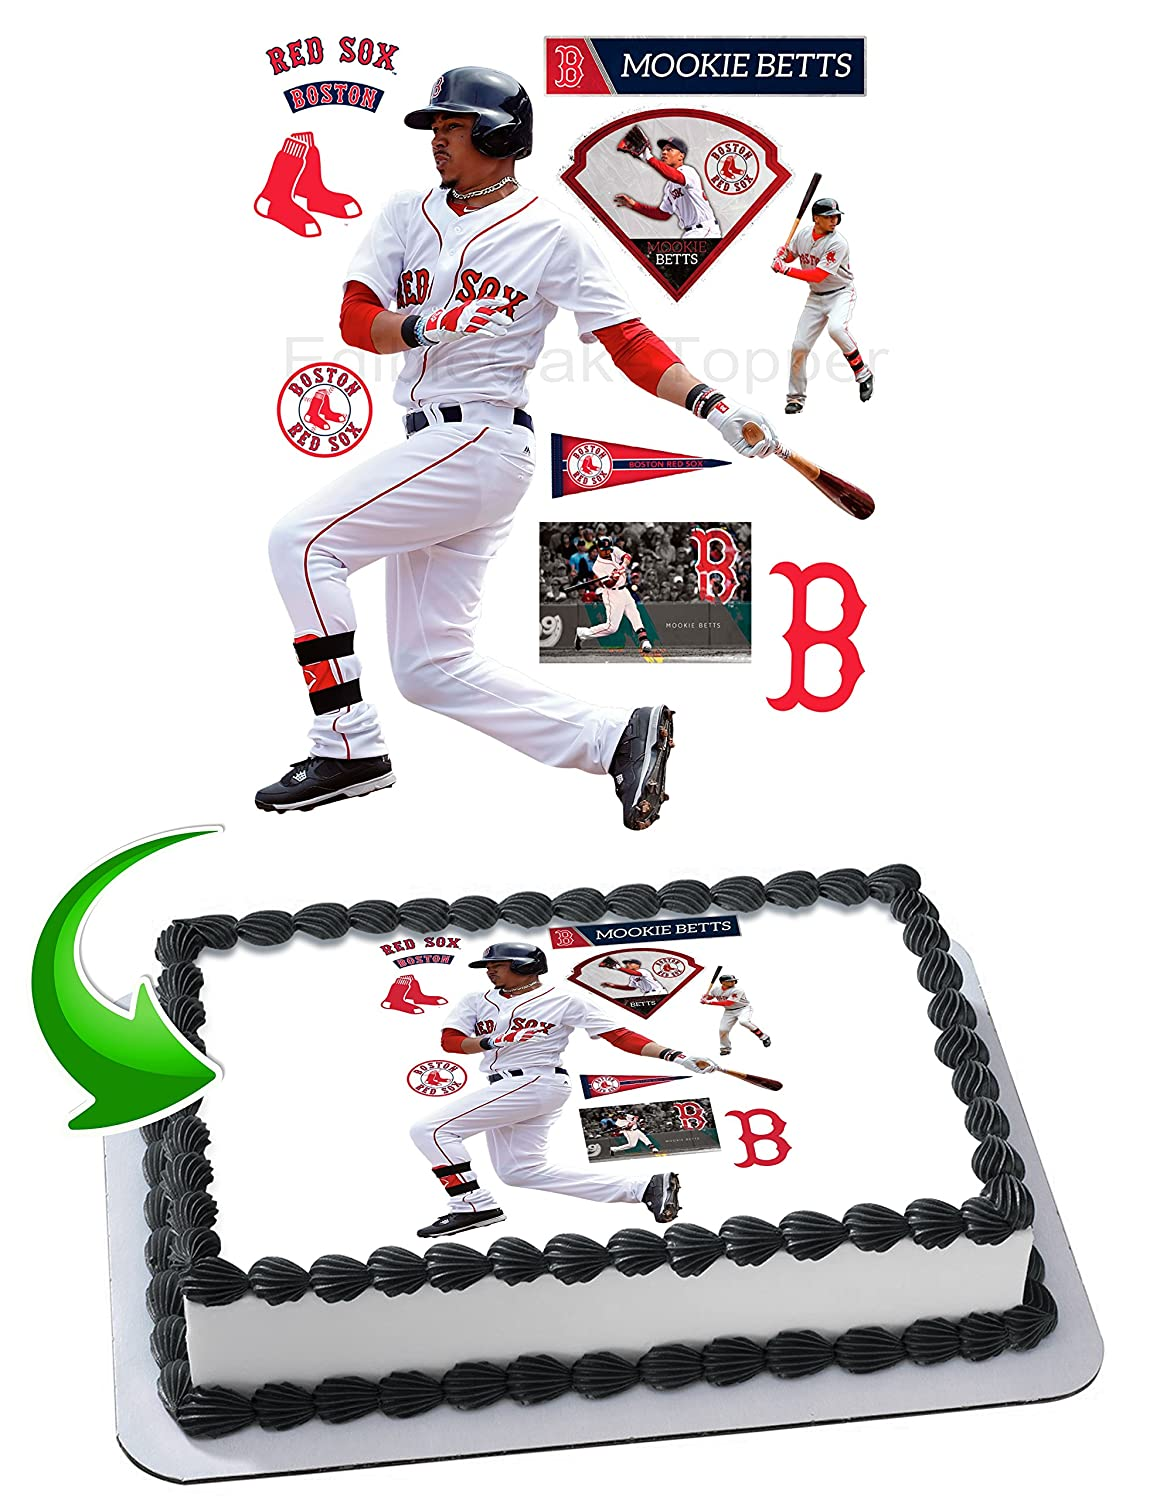 Mookie Betts Boston Red Sox Edible Image Cake Topper Icing Sugar Paper A4 Sheet Frosting Photo 1 4 Best For Amazon